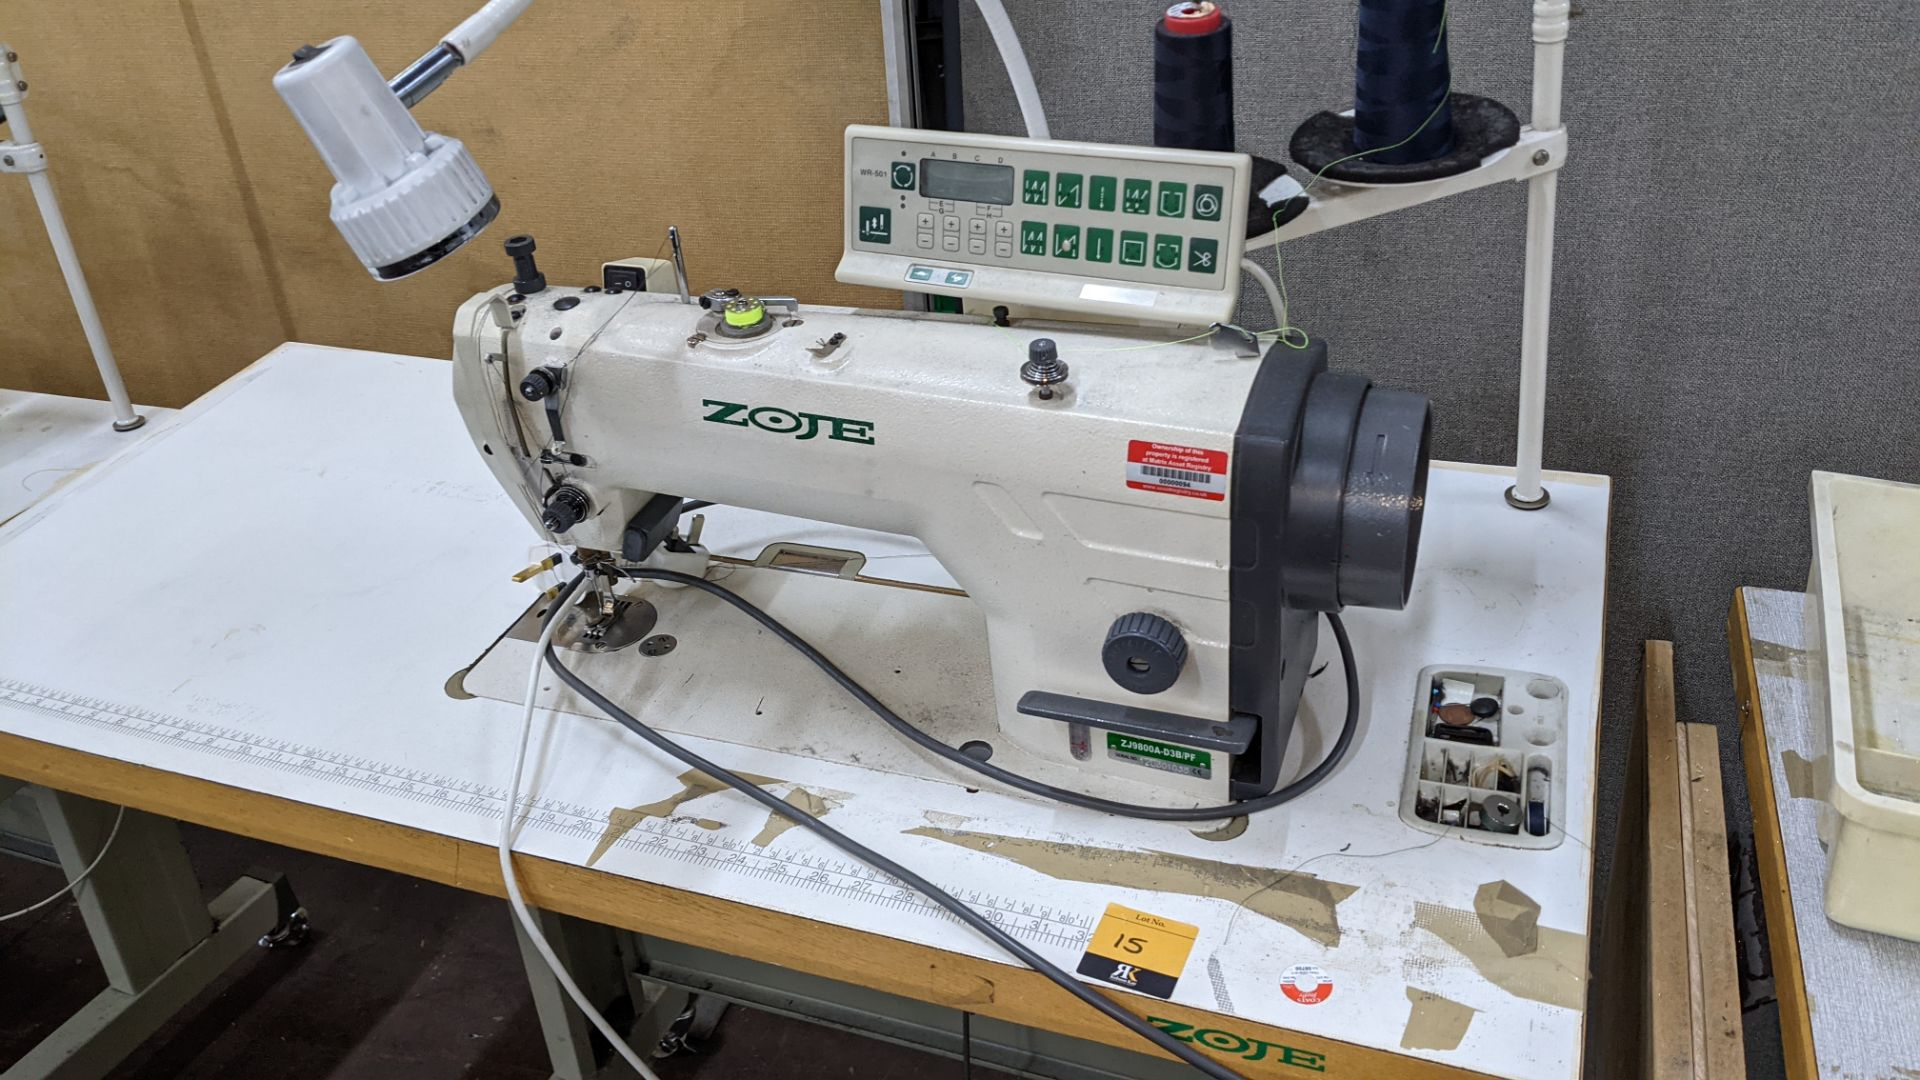 Zoje model ZJ9800A-D3B/PF lockstitch sewing machine with model WR-501 digital controller - Image 4 of 14